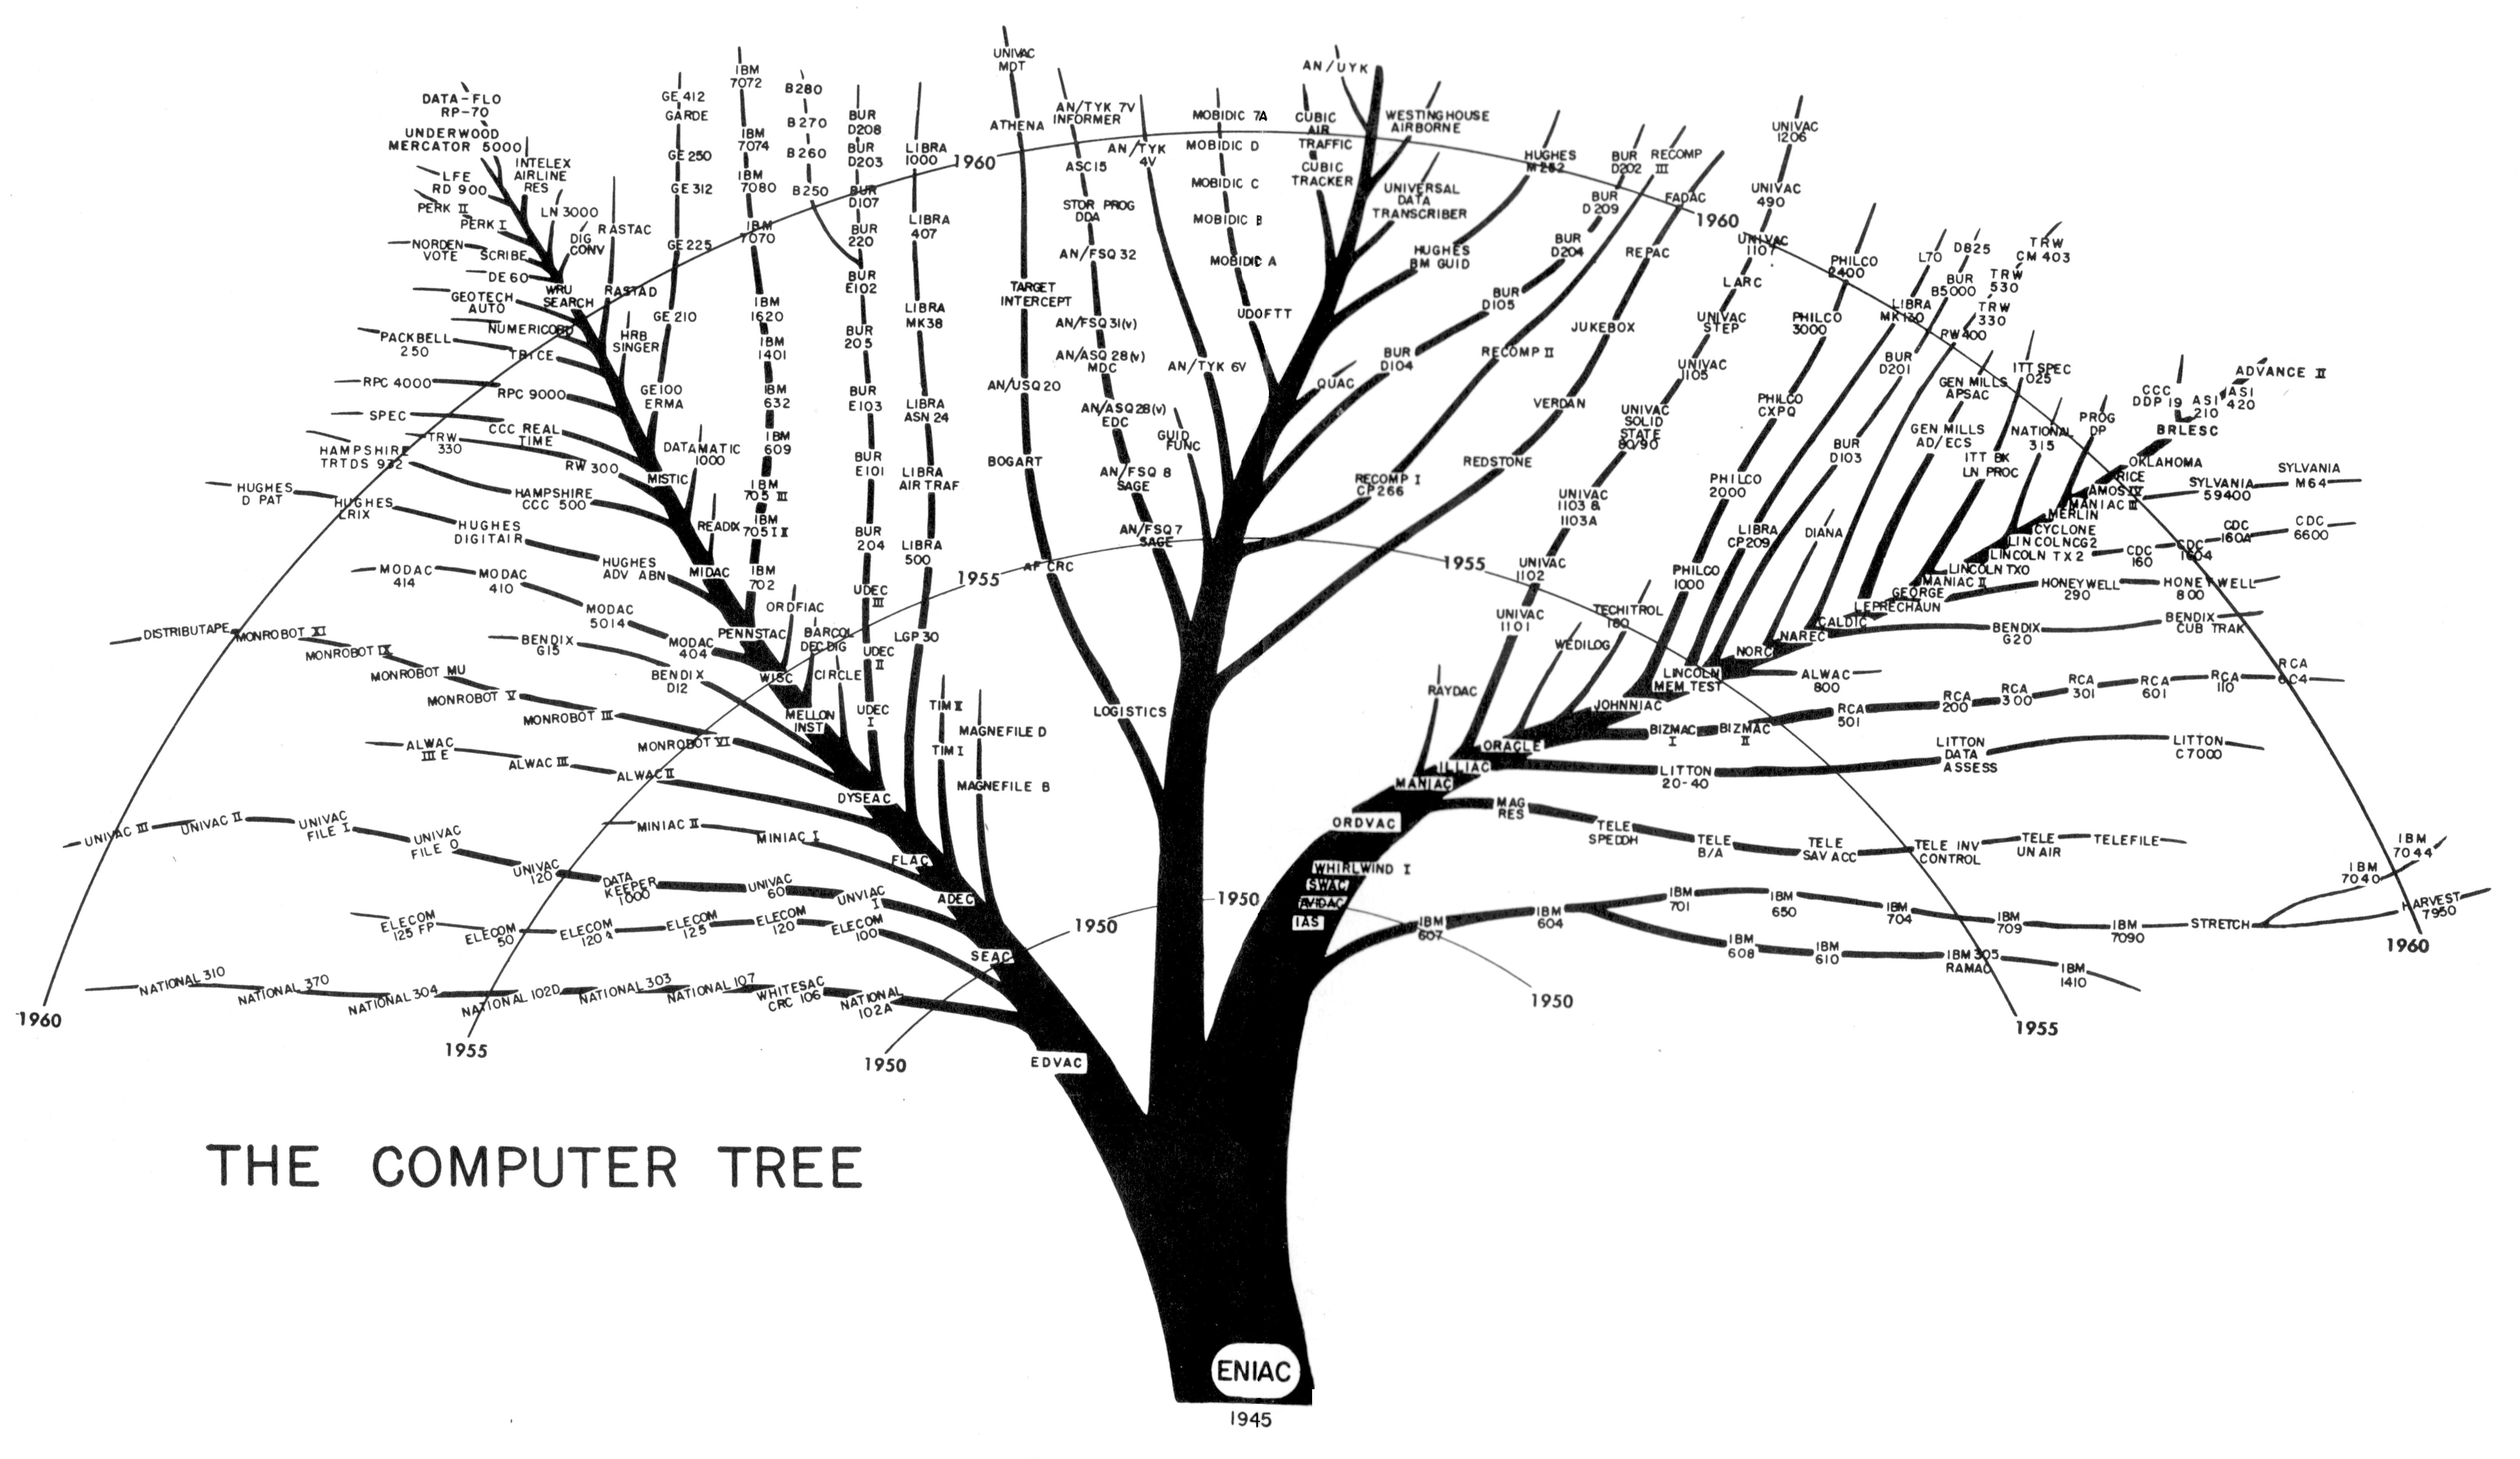 religion tree diagram forest food chain epocalc timelines